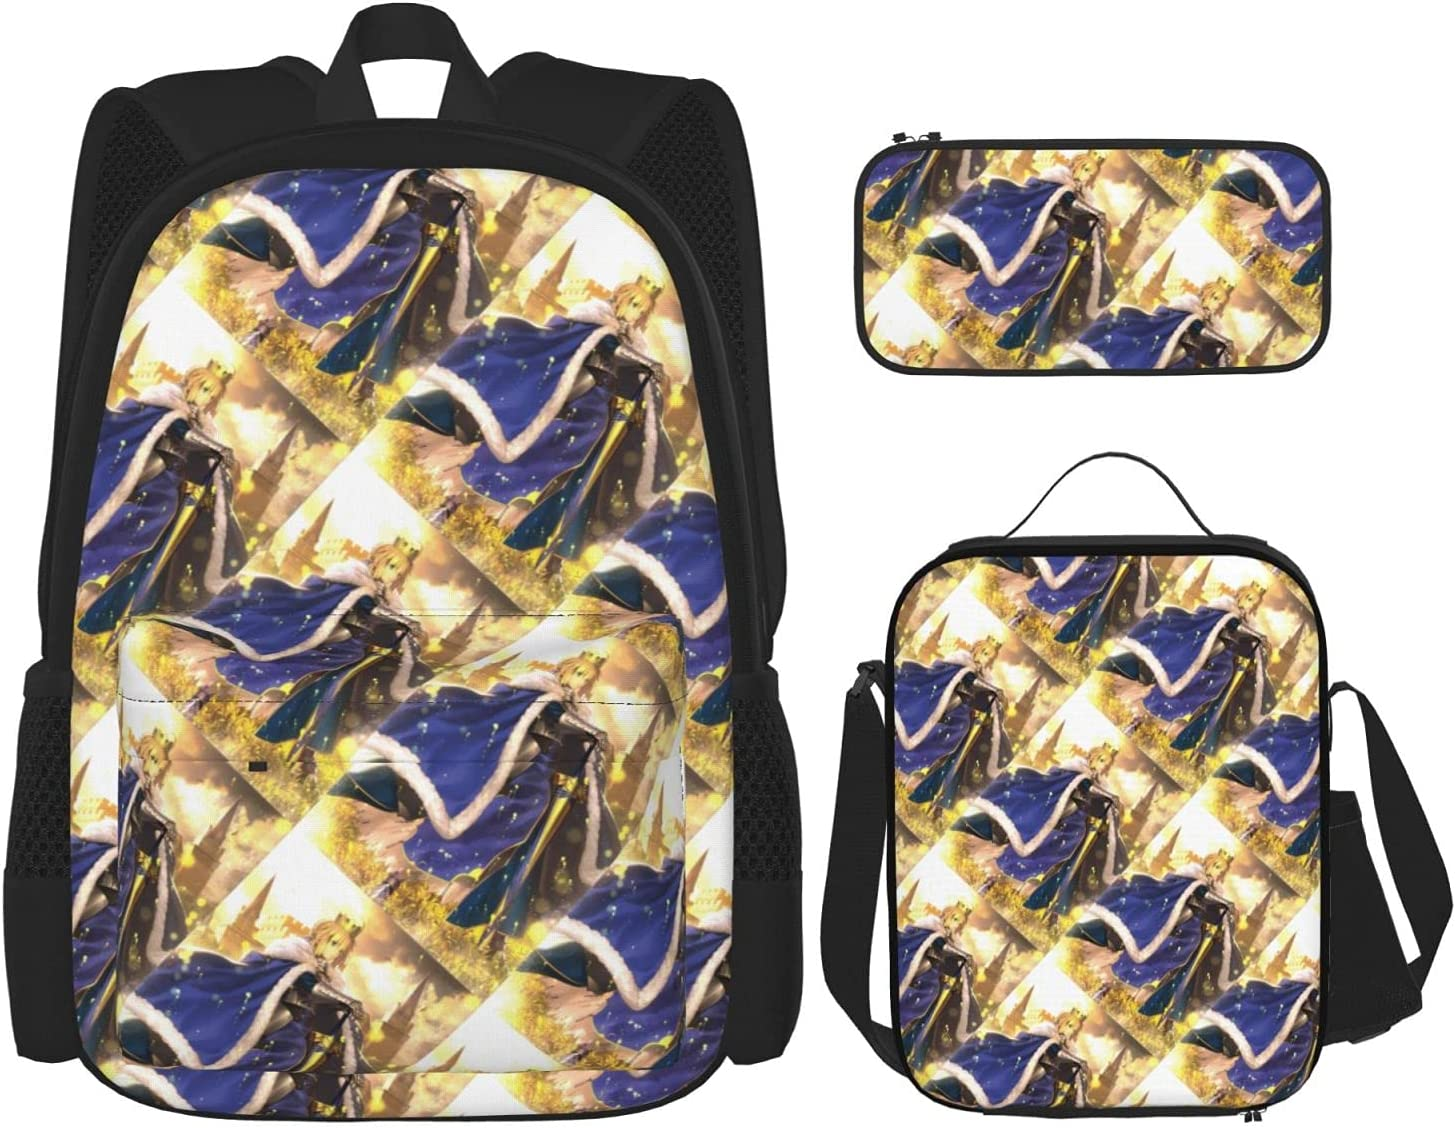 Limited price Fate Zero Saber Anime Backpack 3 + Piece Set lowest price Ca Pencil